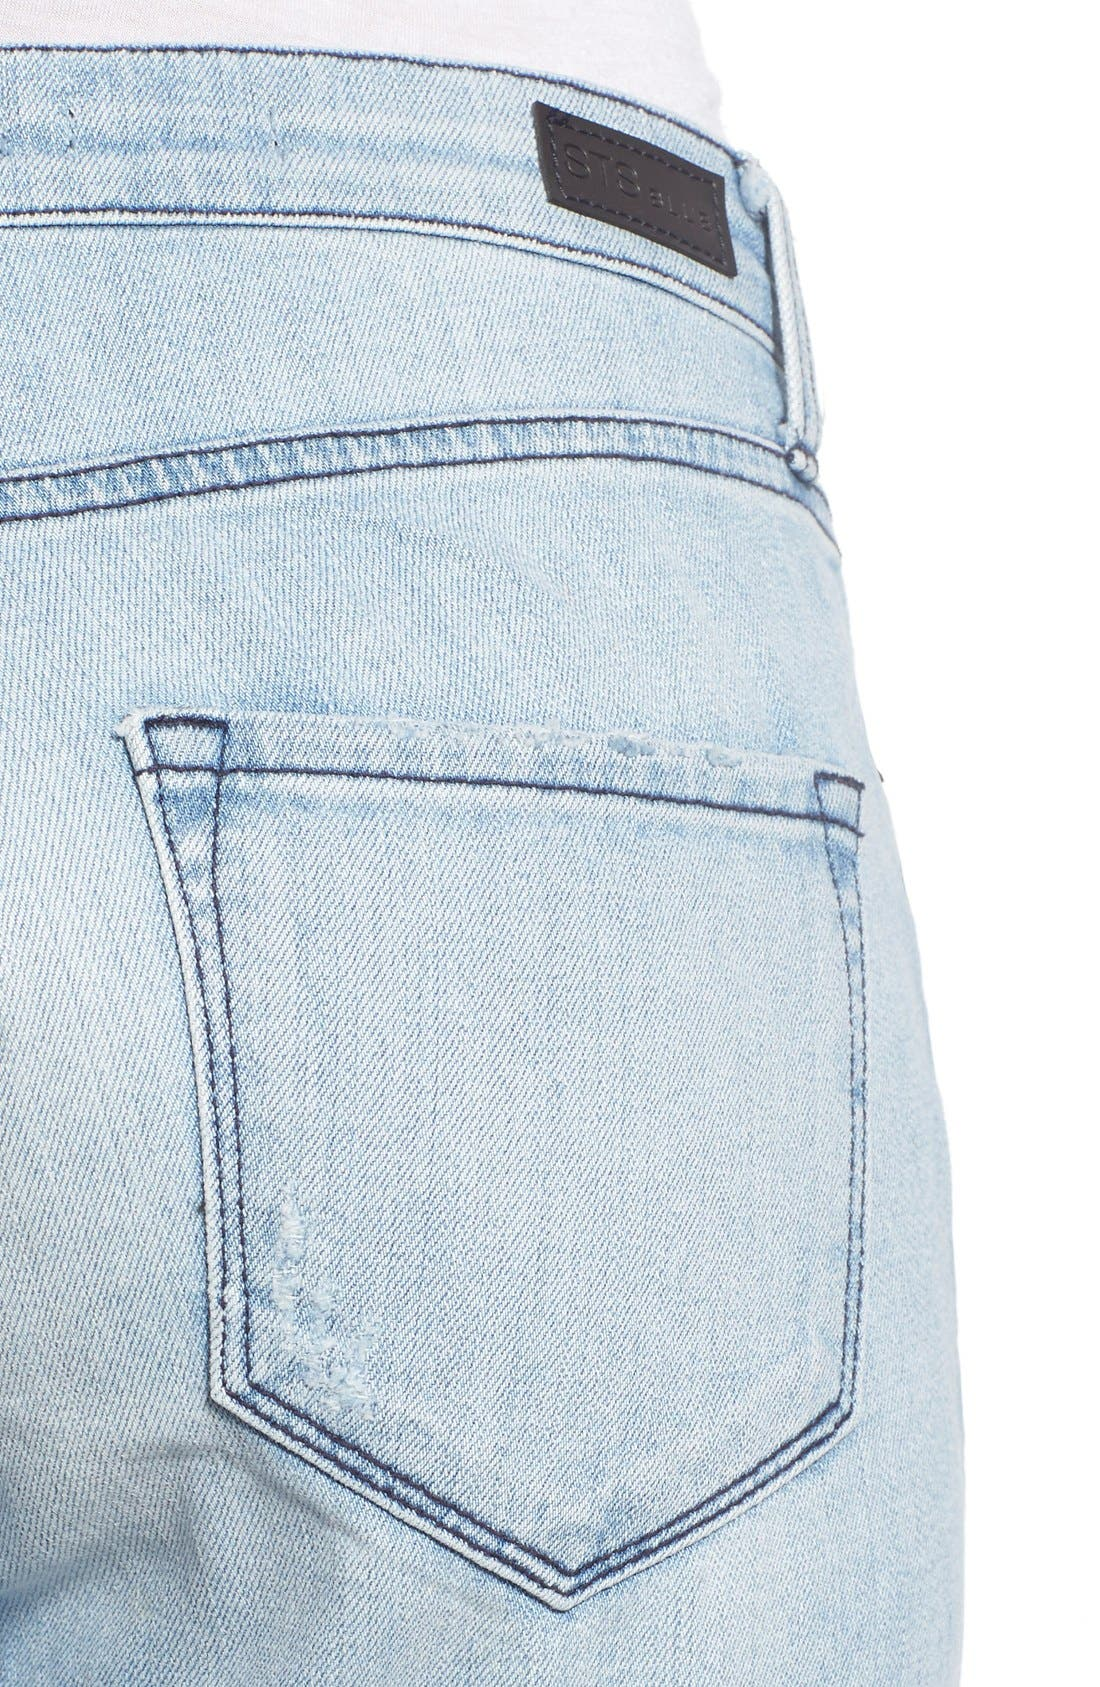 'Taylor' Distressed Jeans,                             Alternate thumbnail 2, color,                             404